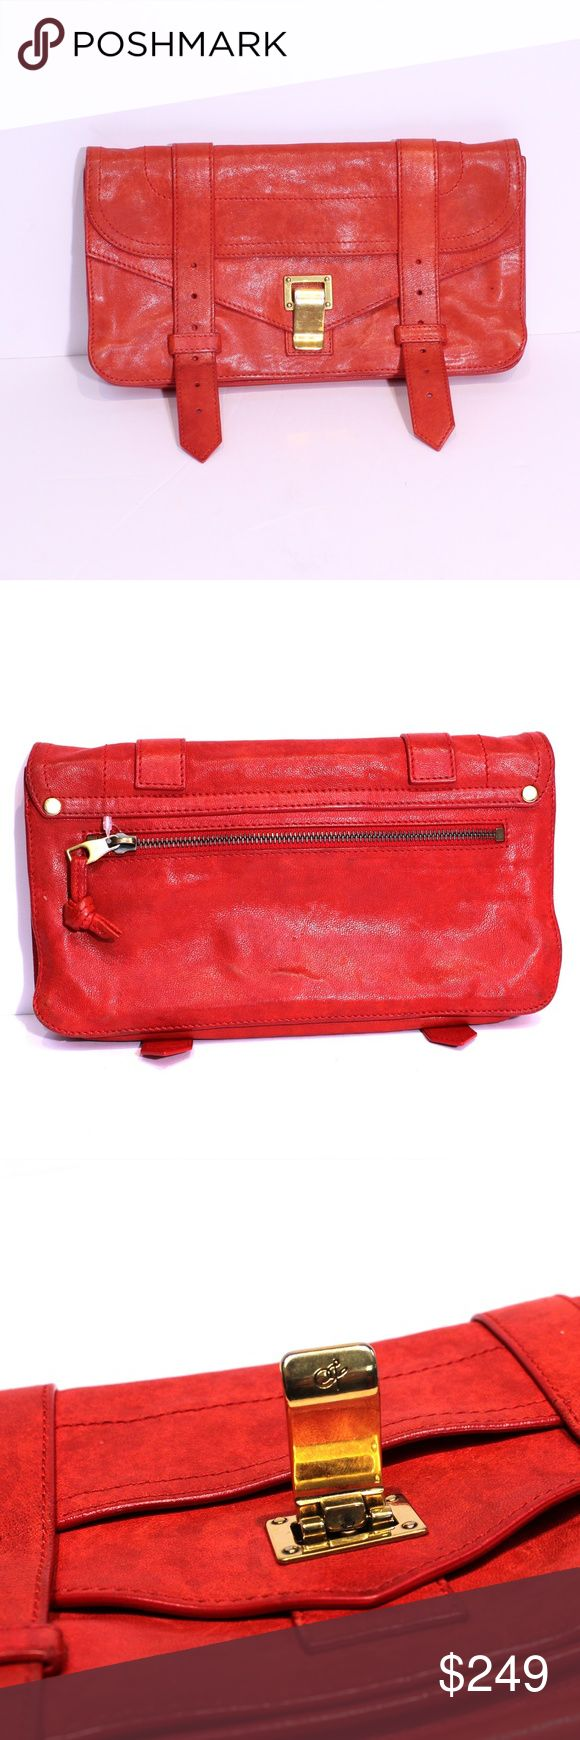 "PROENZA SCHOULER Pochette Red Leather PROENZA SCHOULER PS1 Pochette Red Leather Gold Buckle Clasp Clutch Purse Small  Good condition.  A couple pen marks on the front and back, but no major scuffs or scratches.  Measurements:  Length-10.75"" Height-6"" Depth-3""  MATERIAL Leather body / fabric interior DETAILS Gold tonal hardware Two belt hole punch straps on front Inside compartments Lined One back side zip pocket Flap and hook clasp closure Proenza Schouler Bags Clutches & Wristlets"